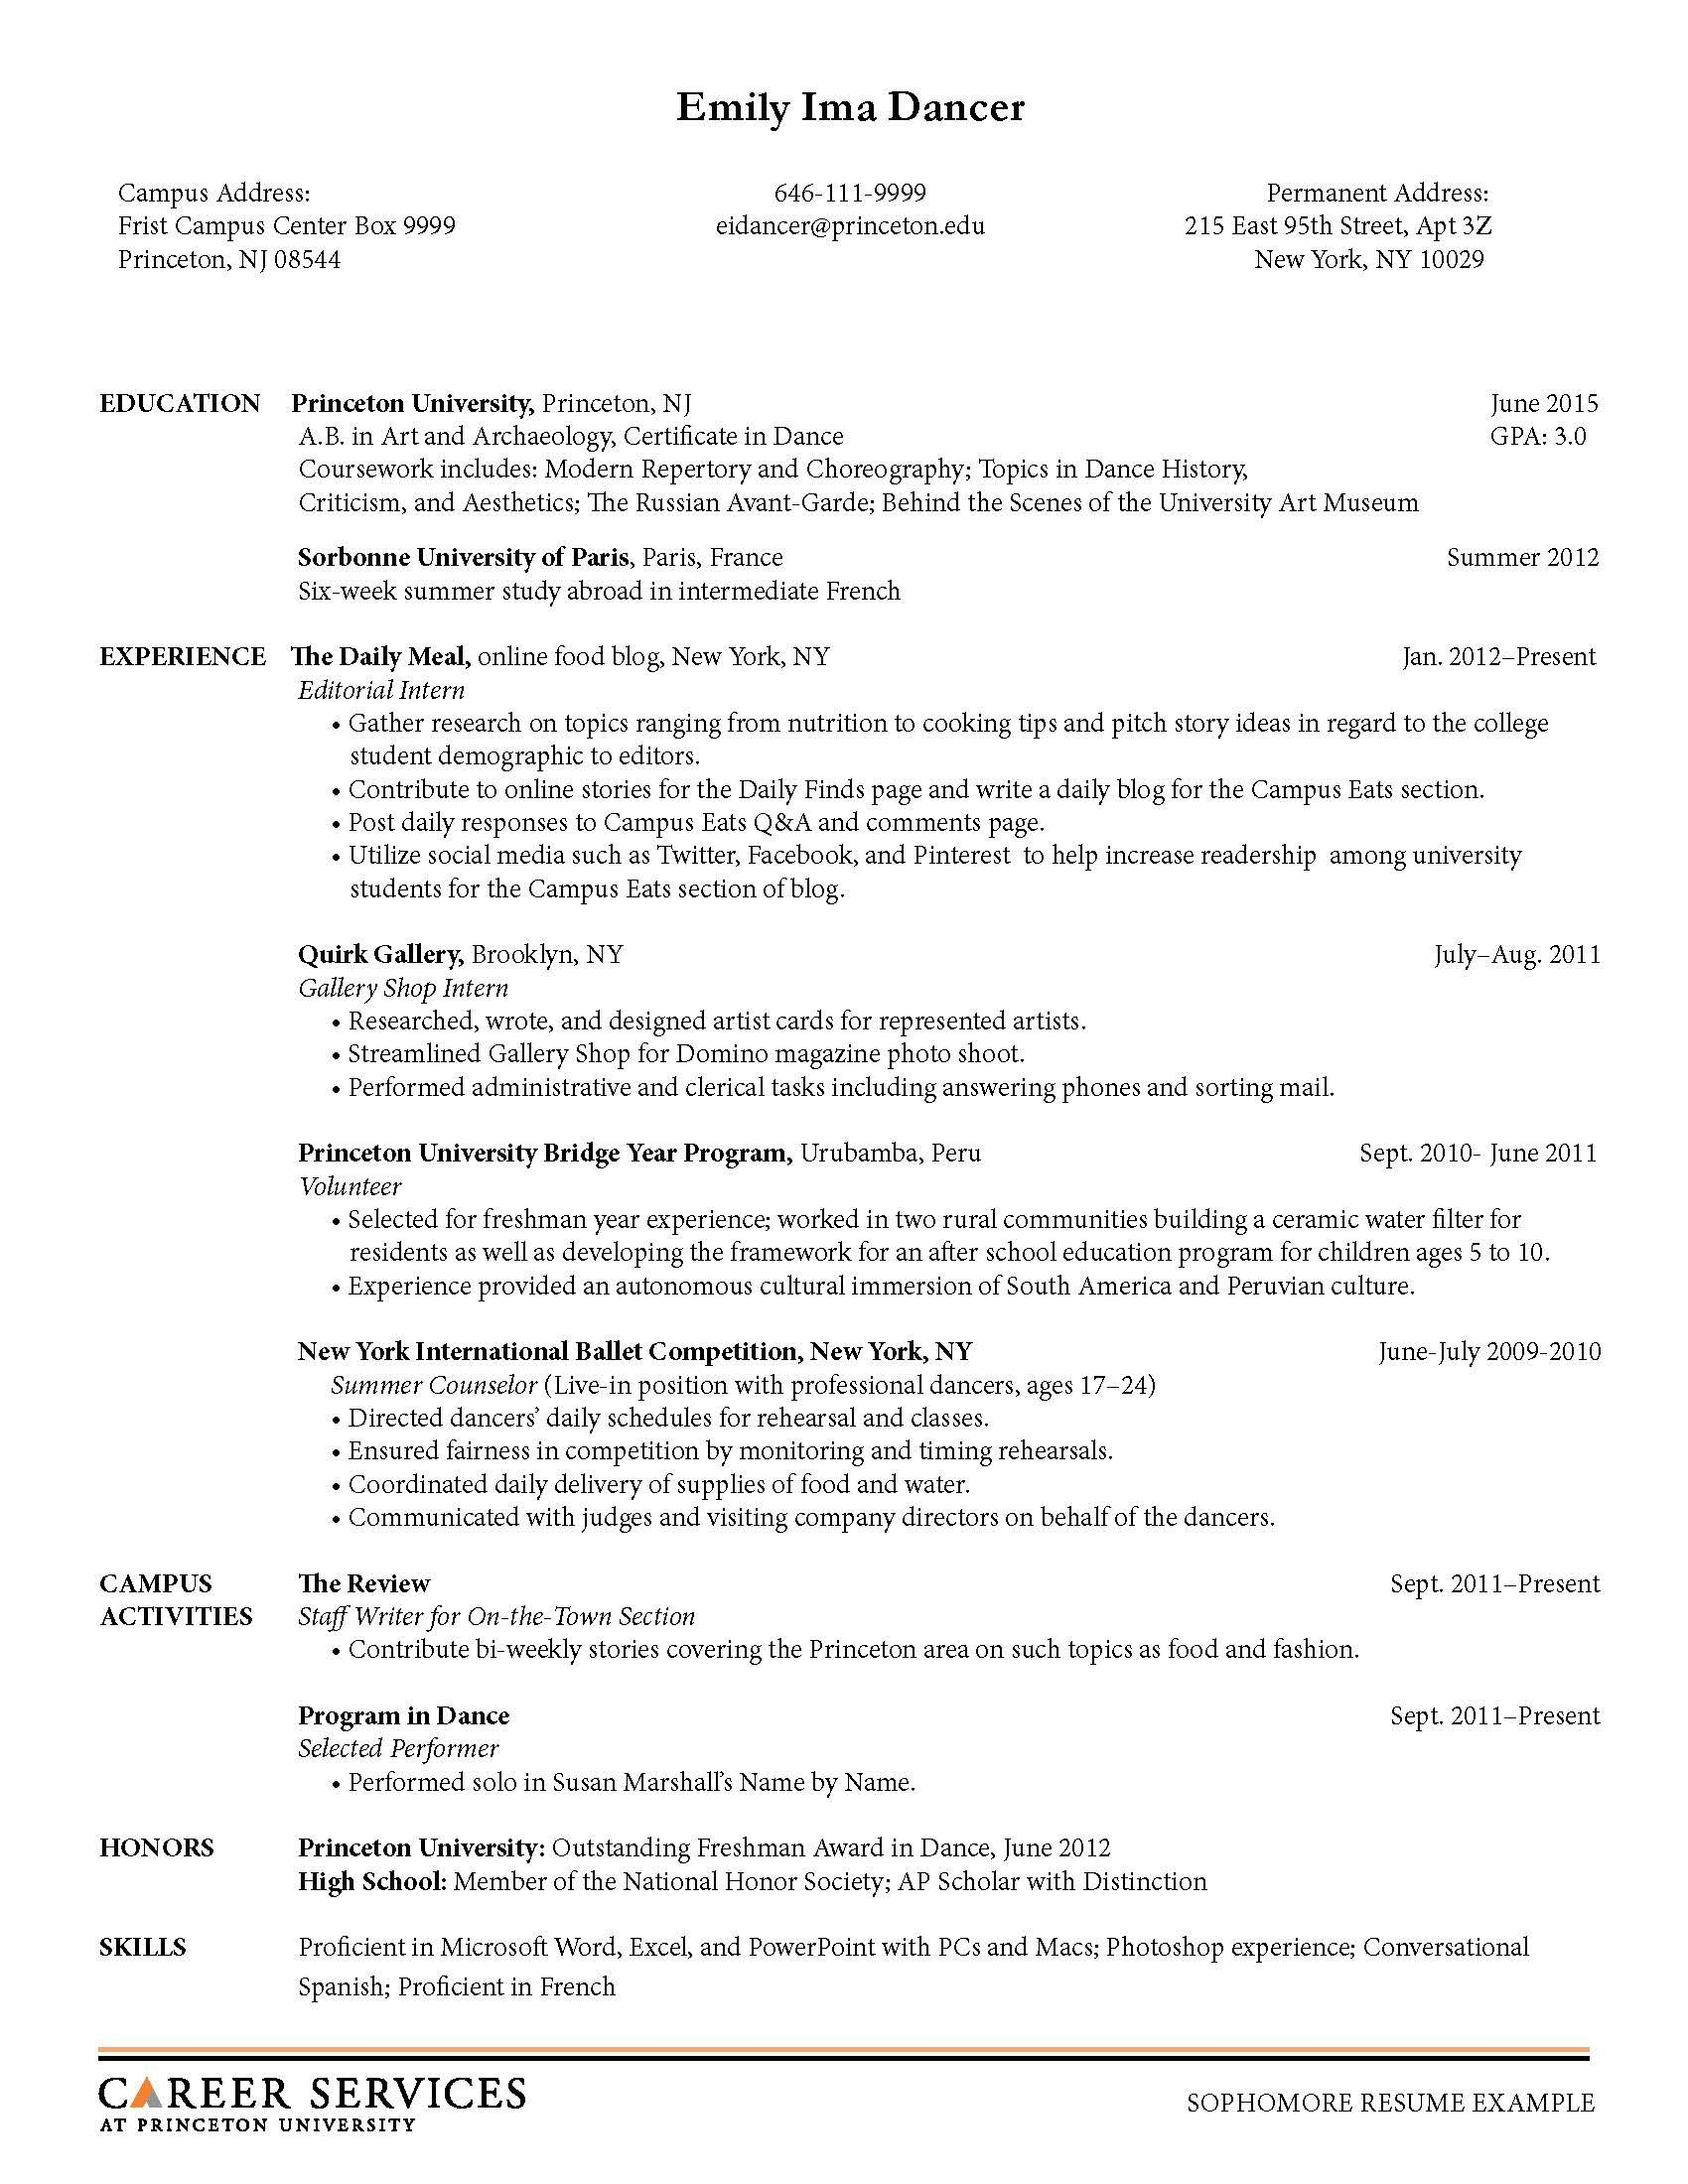 Opposenewapstandardsus  Pleasant Sample Resume Resume And Career On Pinterest With Licious Resume Objective For Retail Besides How To Put Together A Resume Furthermore Student Resumes With Delectable Resume For Stay At Home Mom Also Indeed Resume Builder In Addition Resume Application And Child Care Provider Resume As Well As Resume For Job Application Additionally Dispatcher Resume From Pinterestcom With Opposenewapstandardsus  Licious Sample Resume Resume And Career On Pinterest With Delectable Resume Objective For Retail Besides How To Put Together A Resume Furthermore Student Resumes And Pleasant Resume For Stay At Home Mom Also Indeed Resume Builder In Addition Resume Application From Pinterestcom